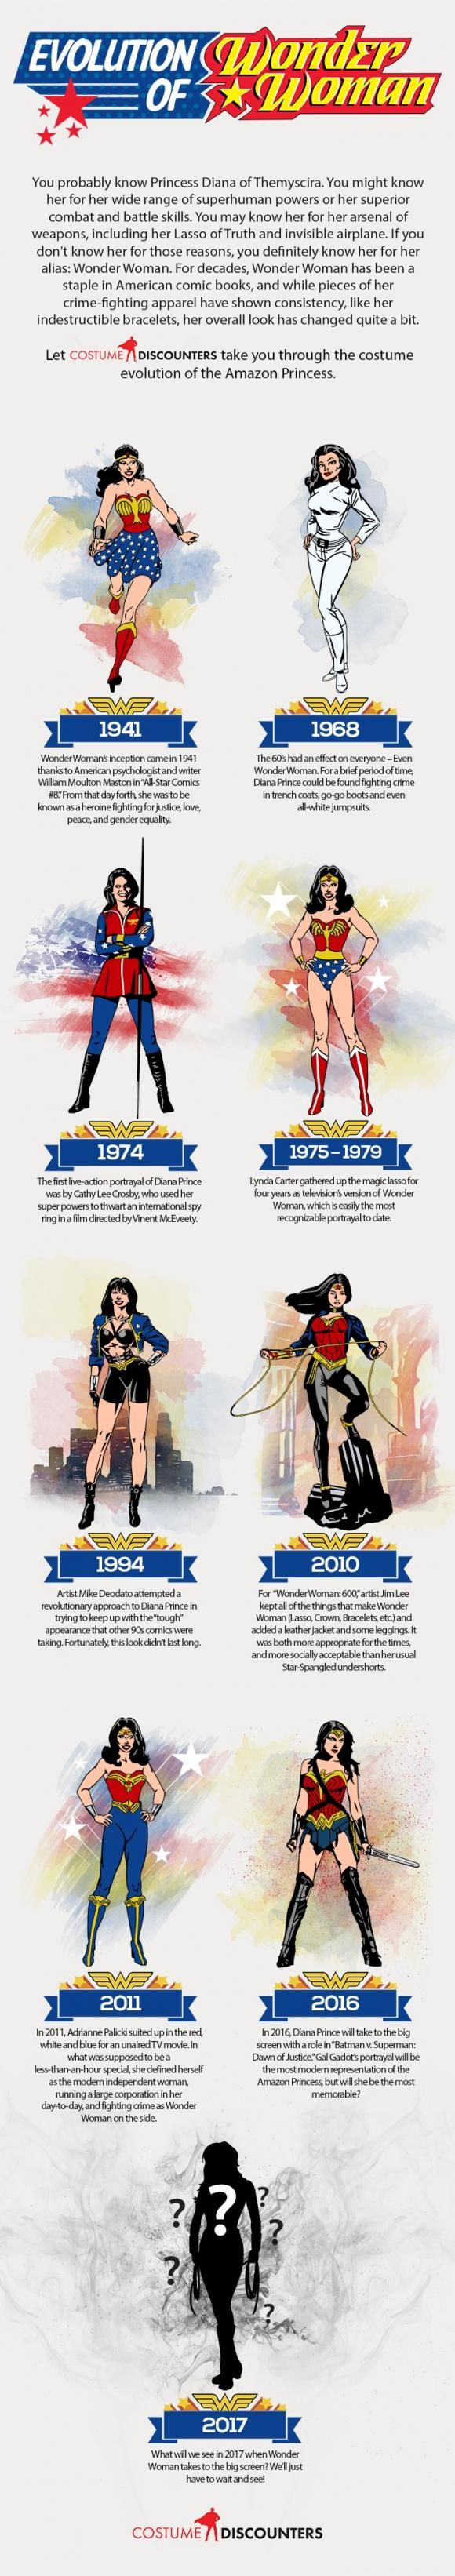 Infographic Charts Evolution of Wonder Woman's Costume